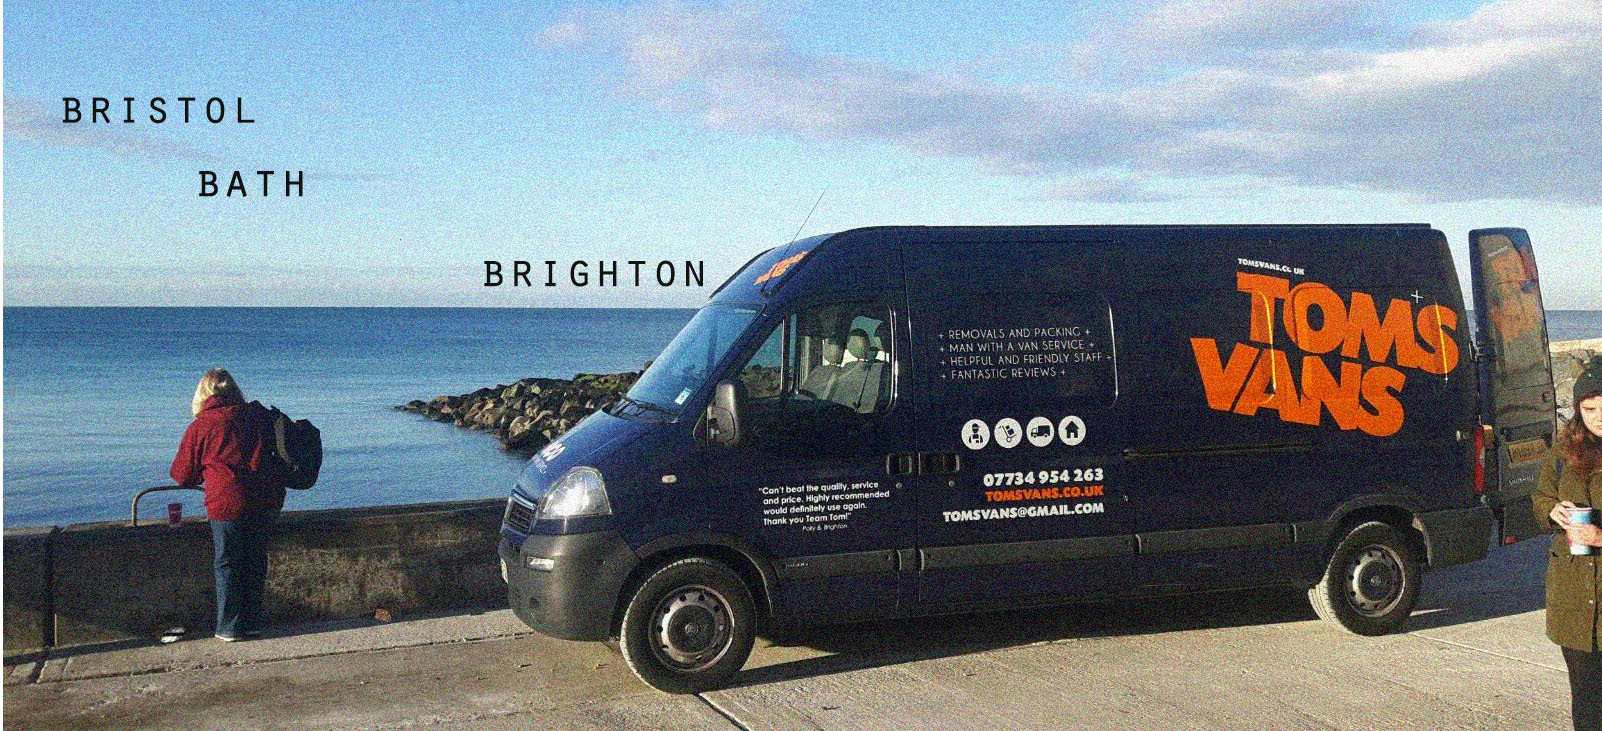 Tom's Vans Brighton your local Man with a Van Removal Company. Offering residents of Brighton & Hove a bespoke Removals and Man with a Van service since 2010. Light removals, man and van deliveries for businesses and domestic customers! Fantastic reviews!